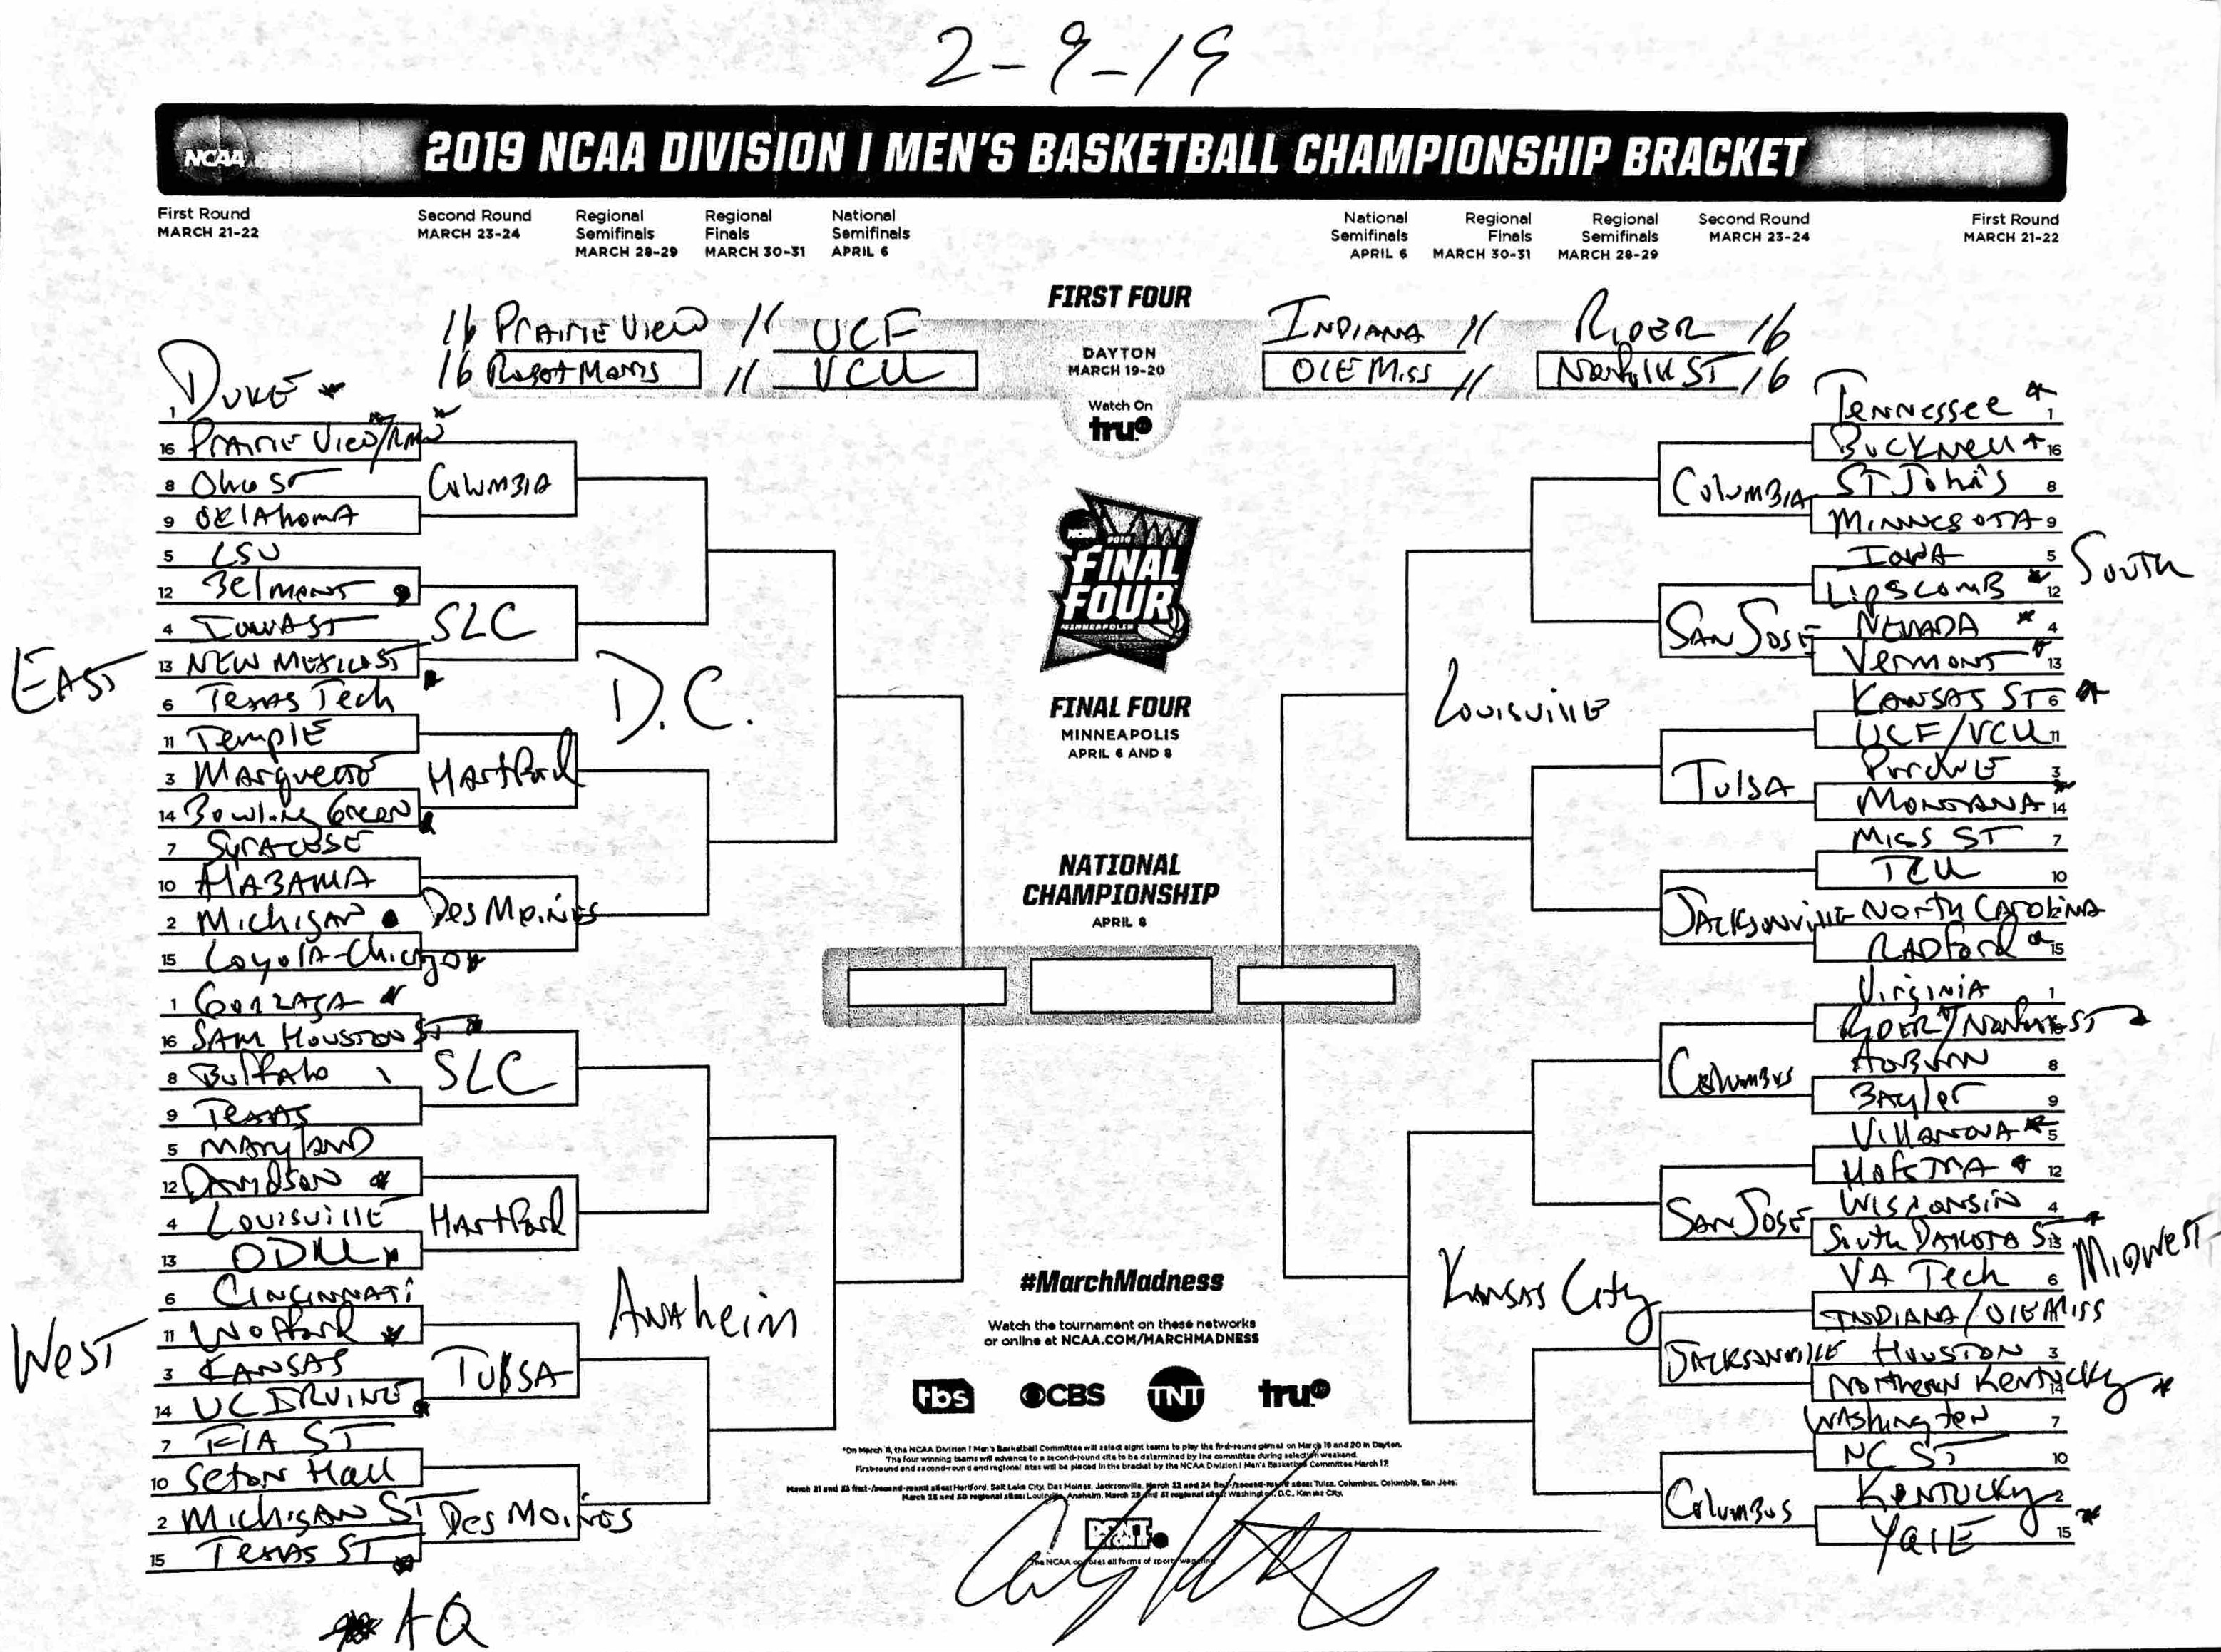 March Madness 8 Bold Predictions For The 2019 Ncaa Tournament: The Complete March Madness Field Of 68 Predicted After The